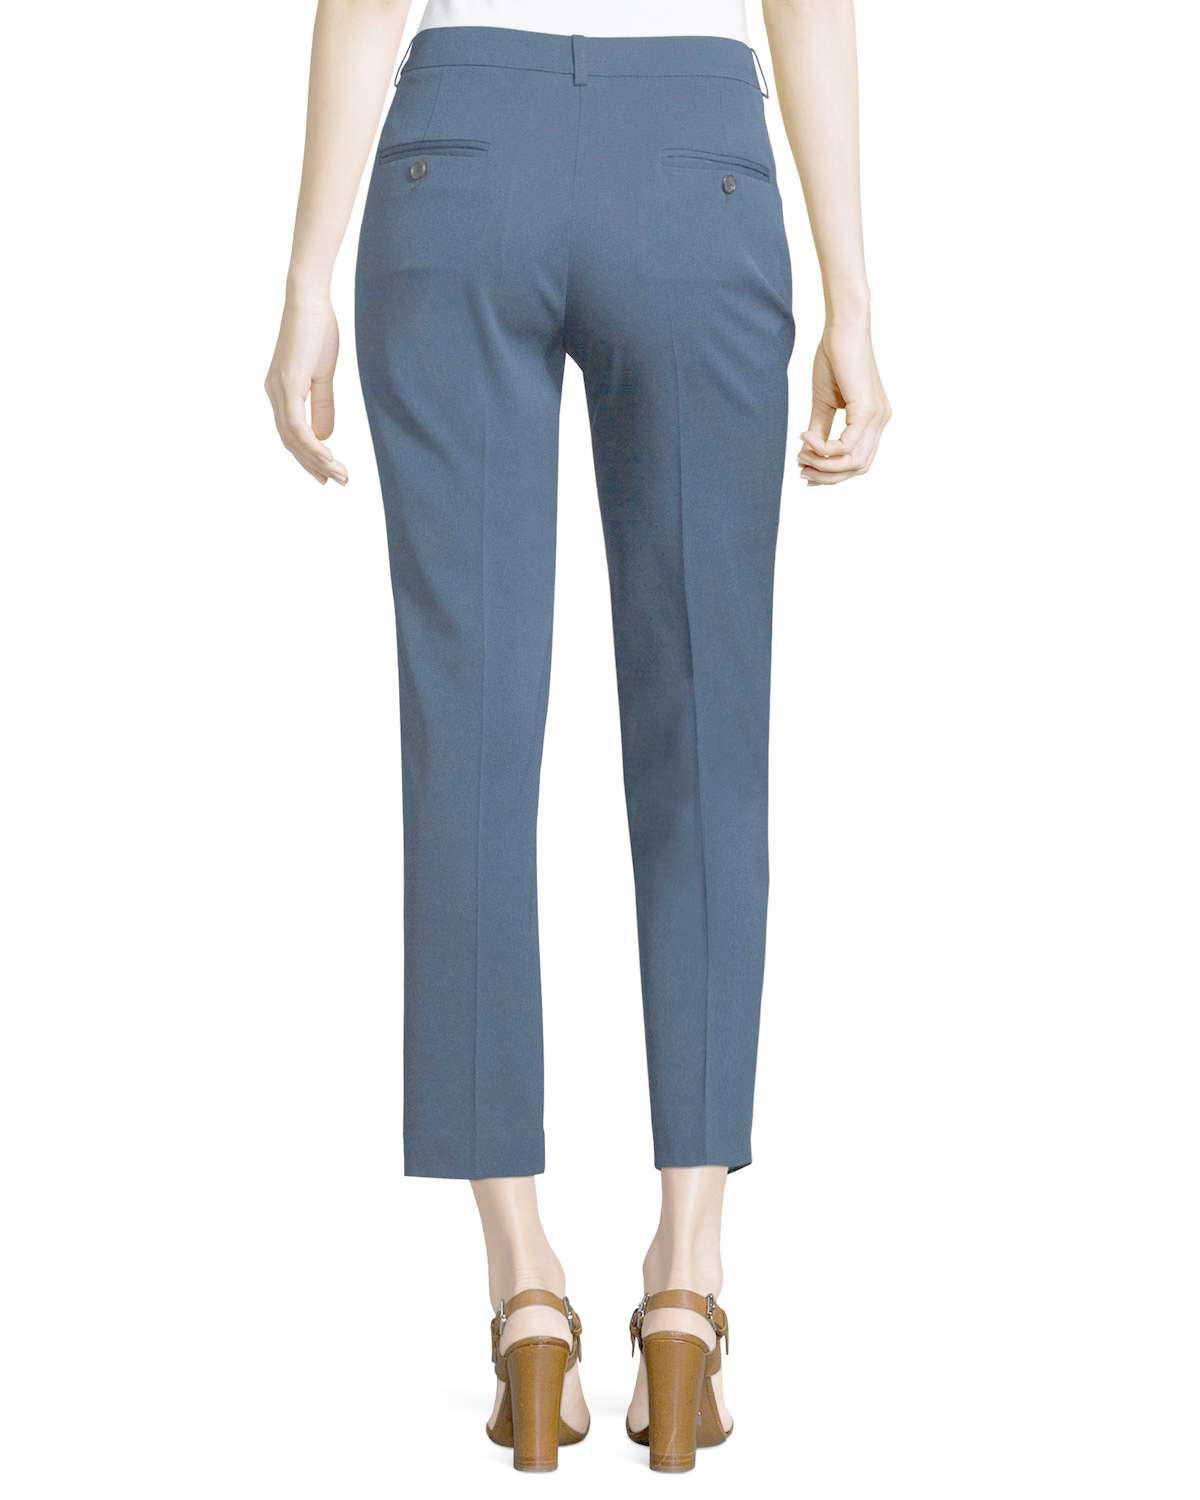 Best prices on Blue cropped satin pants in Women's Pants online. Visit Bizrate to find the best deals on top brands. Read reviews on Clothing & Accessories merchants and buy with confidence.